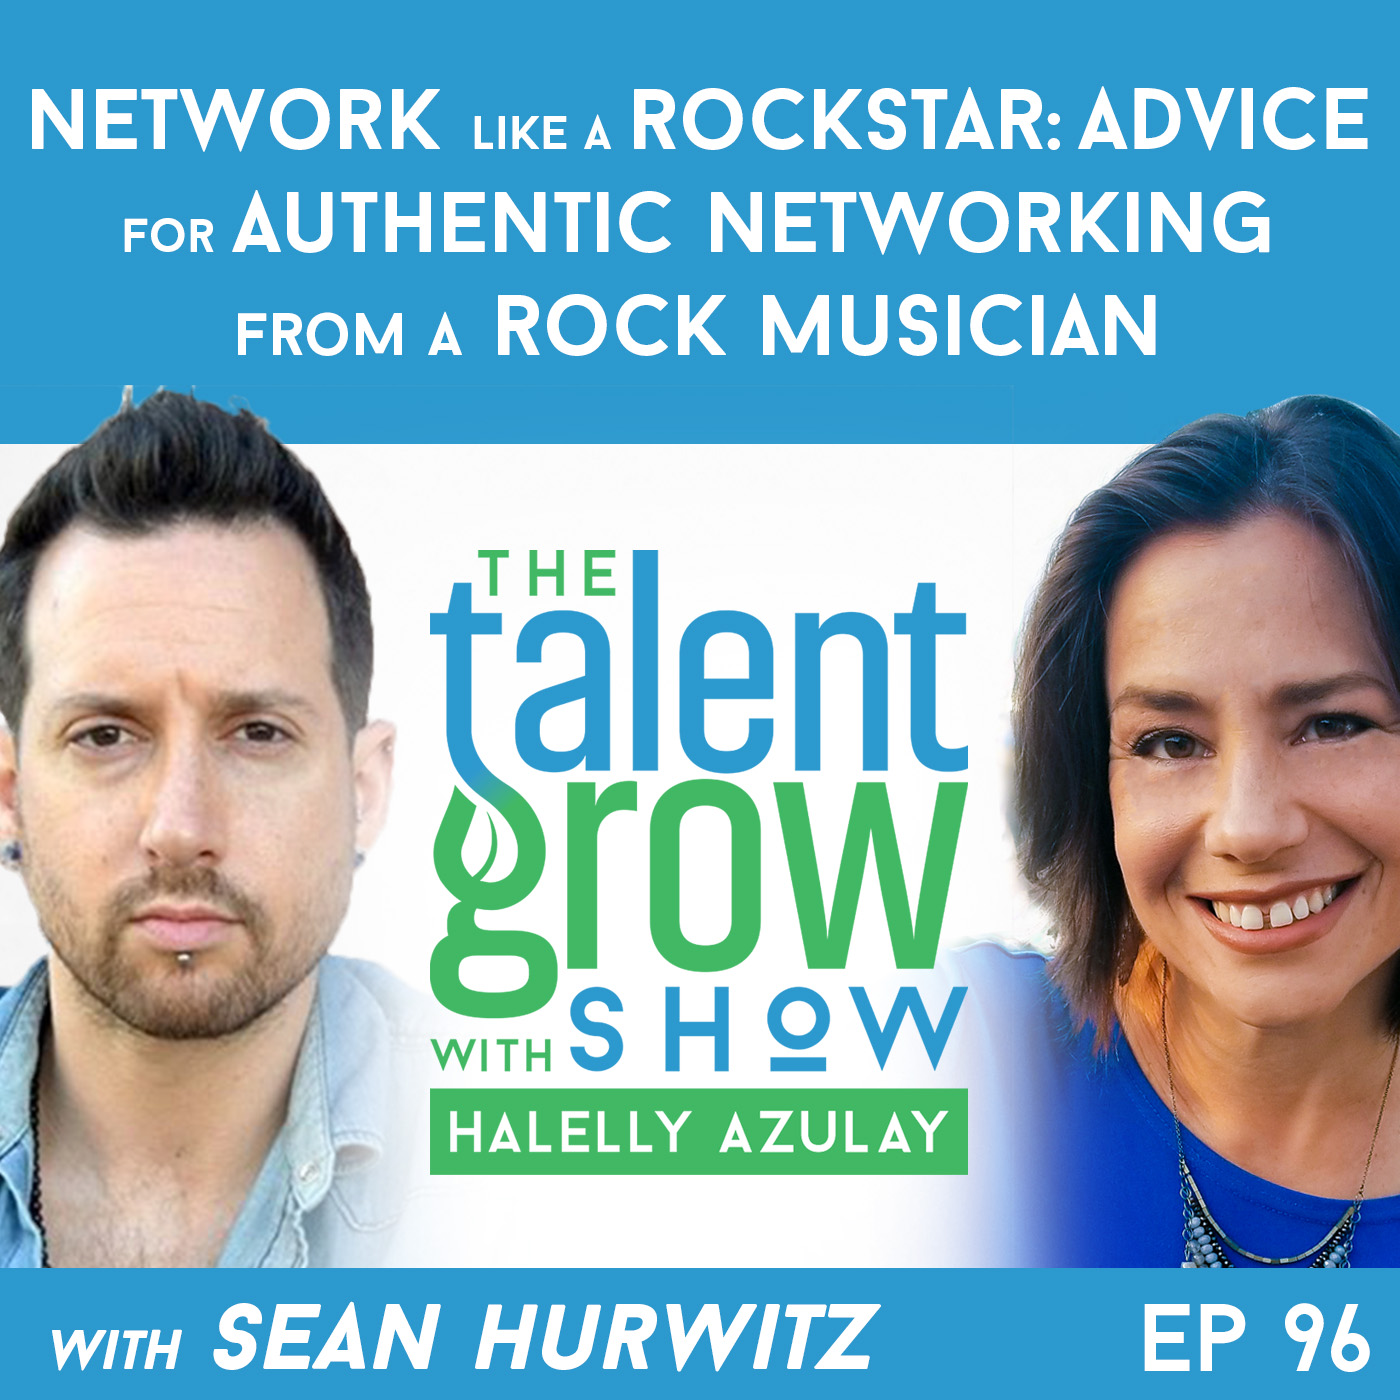 96: Network like a Rockstar -- Advice for Authentic Networking from Rock Musician Sean Hurwitz